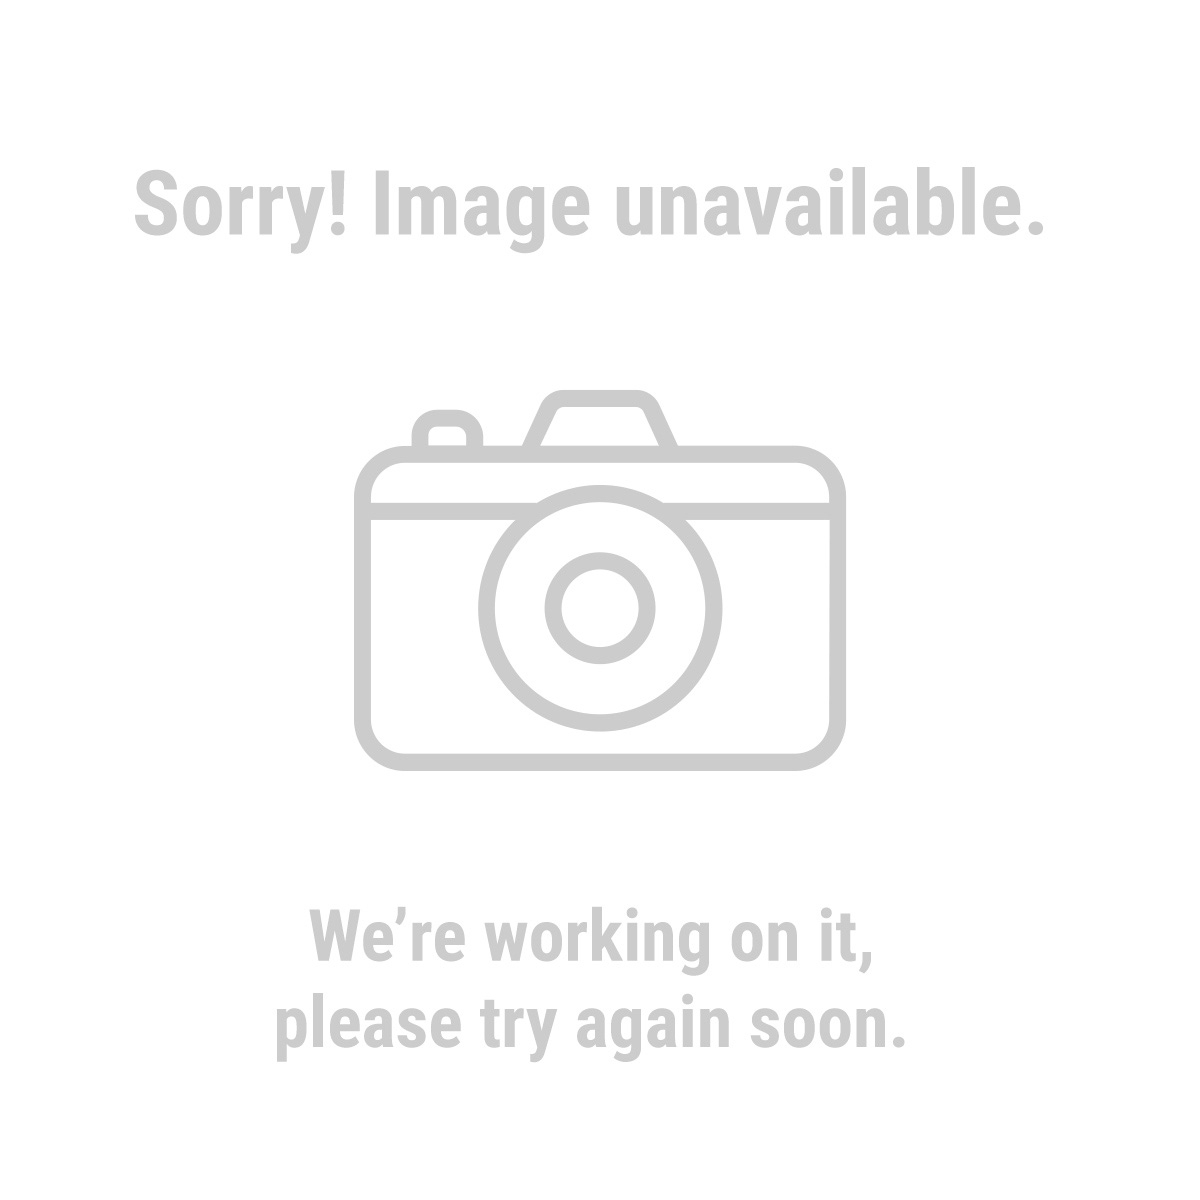 HFT 61863 100 ft. x 14 Gauge Outdoor Extension Cord